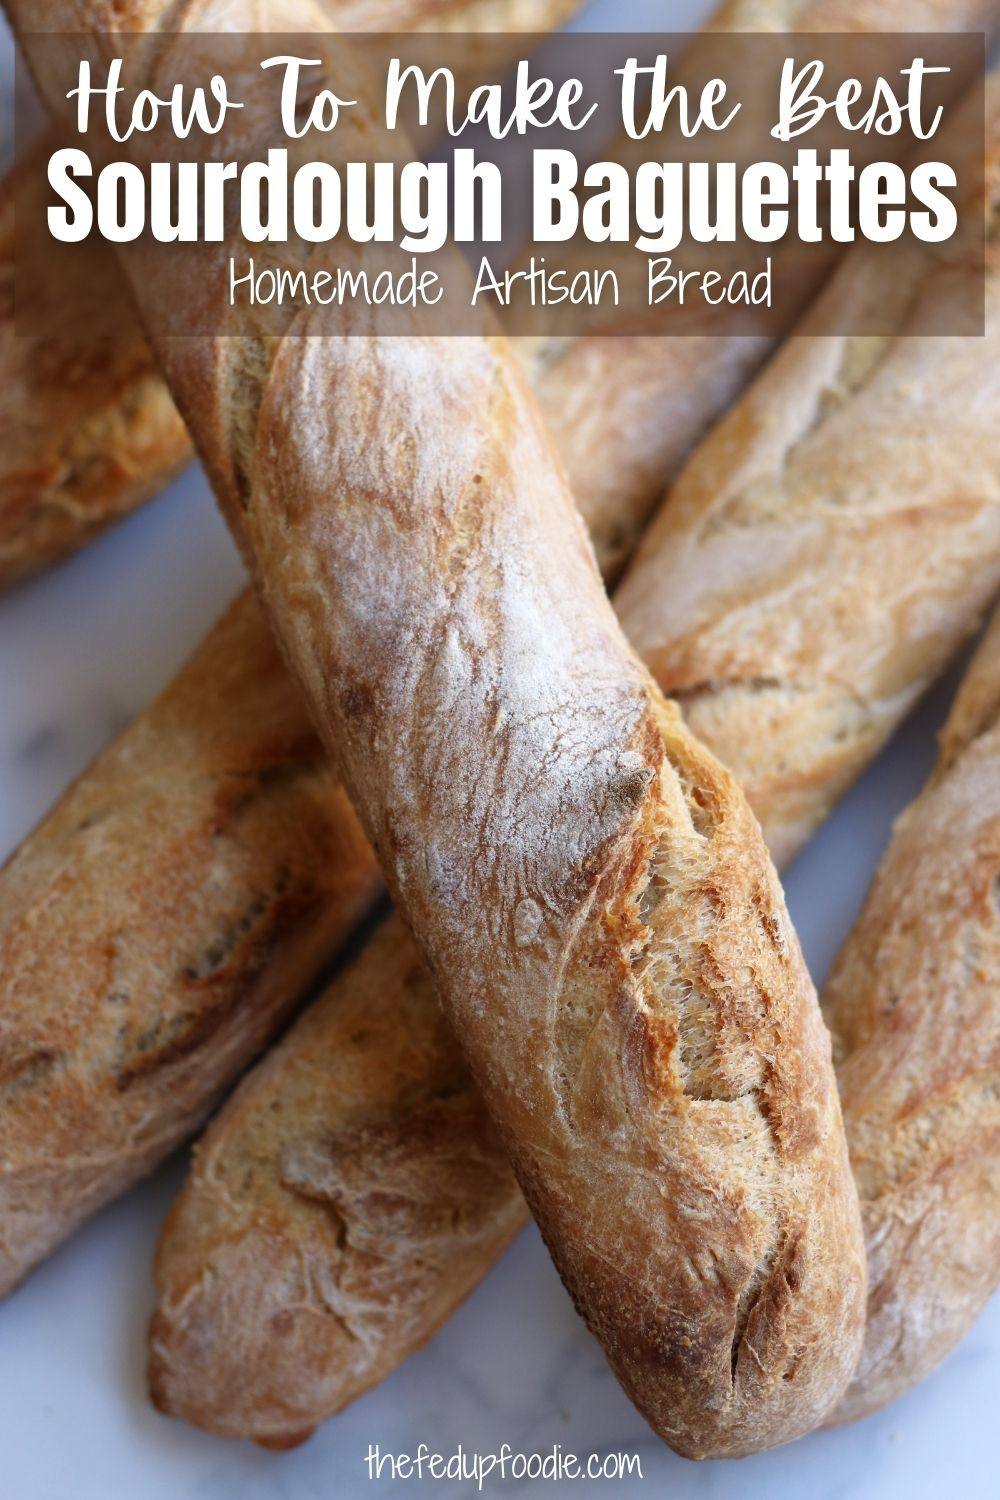 Artisan homemade Sourdough Baguettes are so much easier to make than they seem. This recipe makes baguettes with a gorgeous crusty exterior and a fluffy interior. Use these Baguettes to make breadcrumbs, croutons, sandwiches or just enjoy them by themselves. #SourdoughBaguetteRecipe #SourdoughBaguette #SourdoughBaguetteRecipeWithStarter #SourDoughBaguetteRecipe #ArtisanBreadRecipes #RusticBreadRecipeEasy #BestHomemadeBread